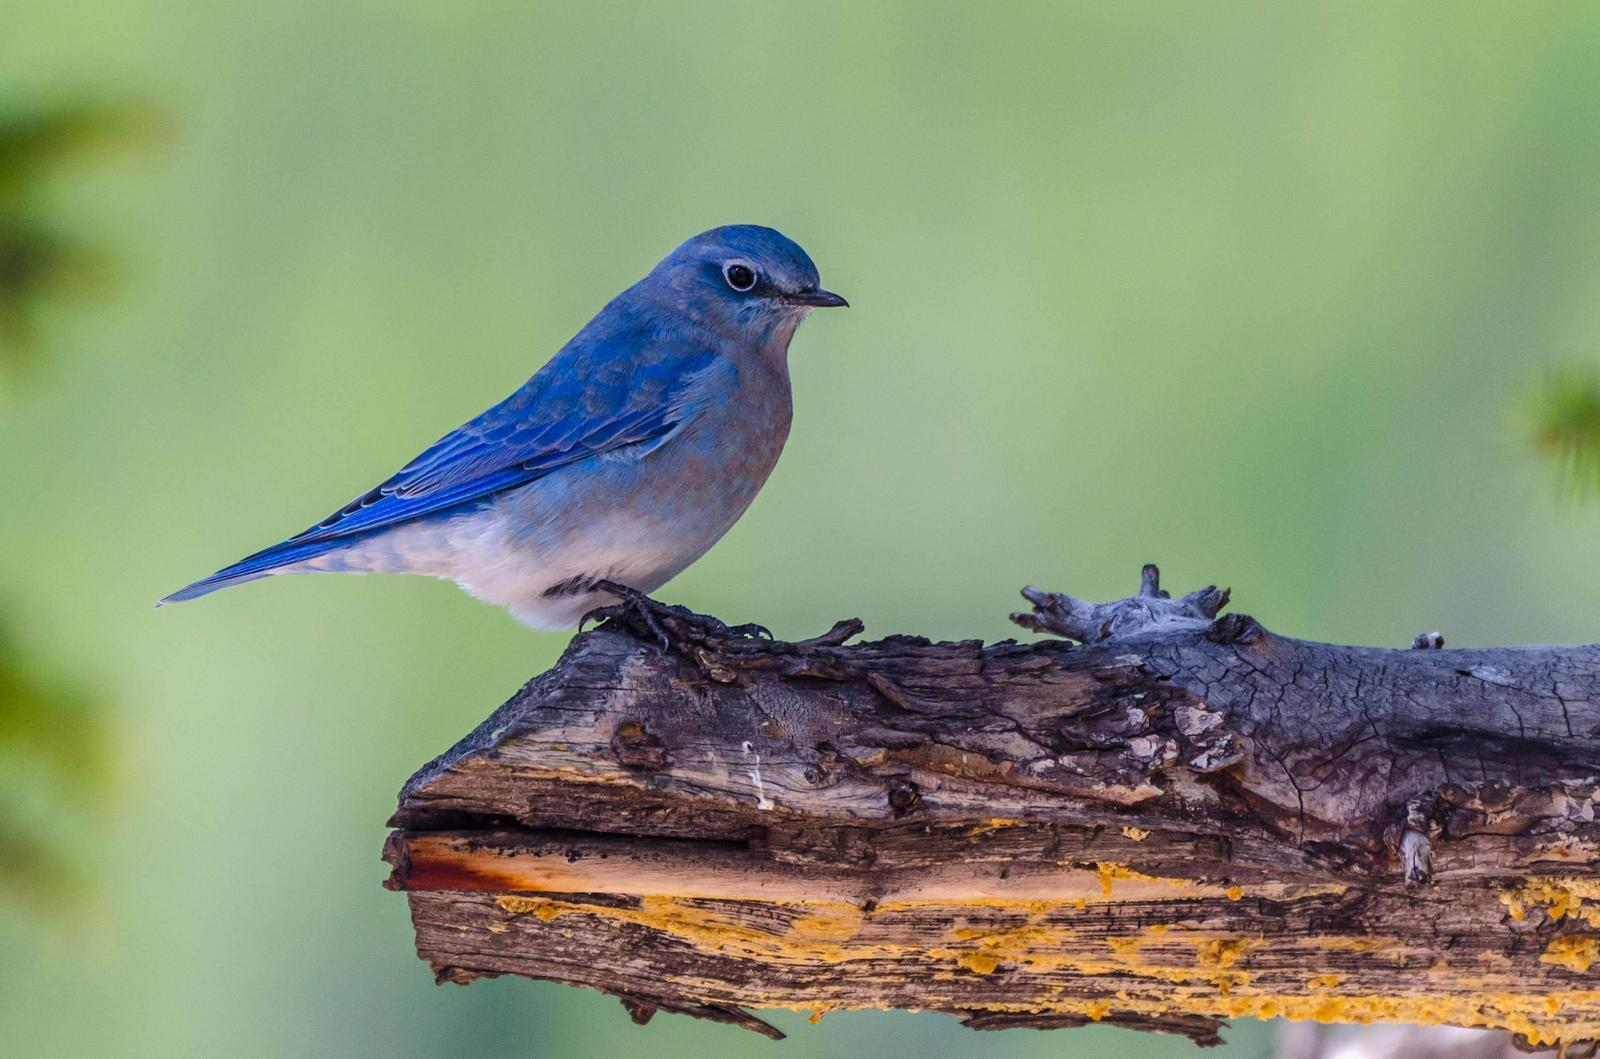 Mountain Bluebird Photo by Scott Yerges